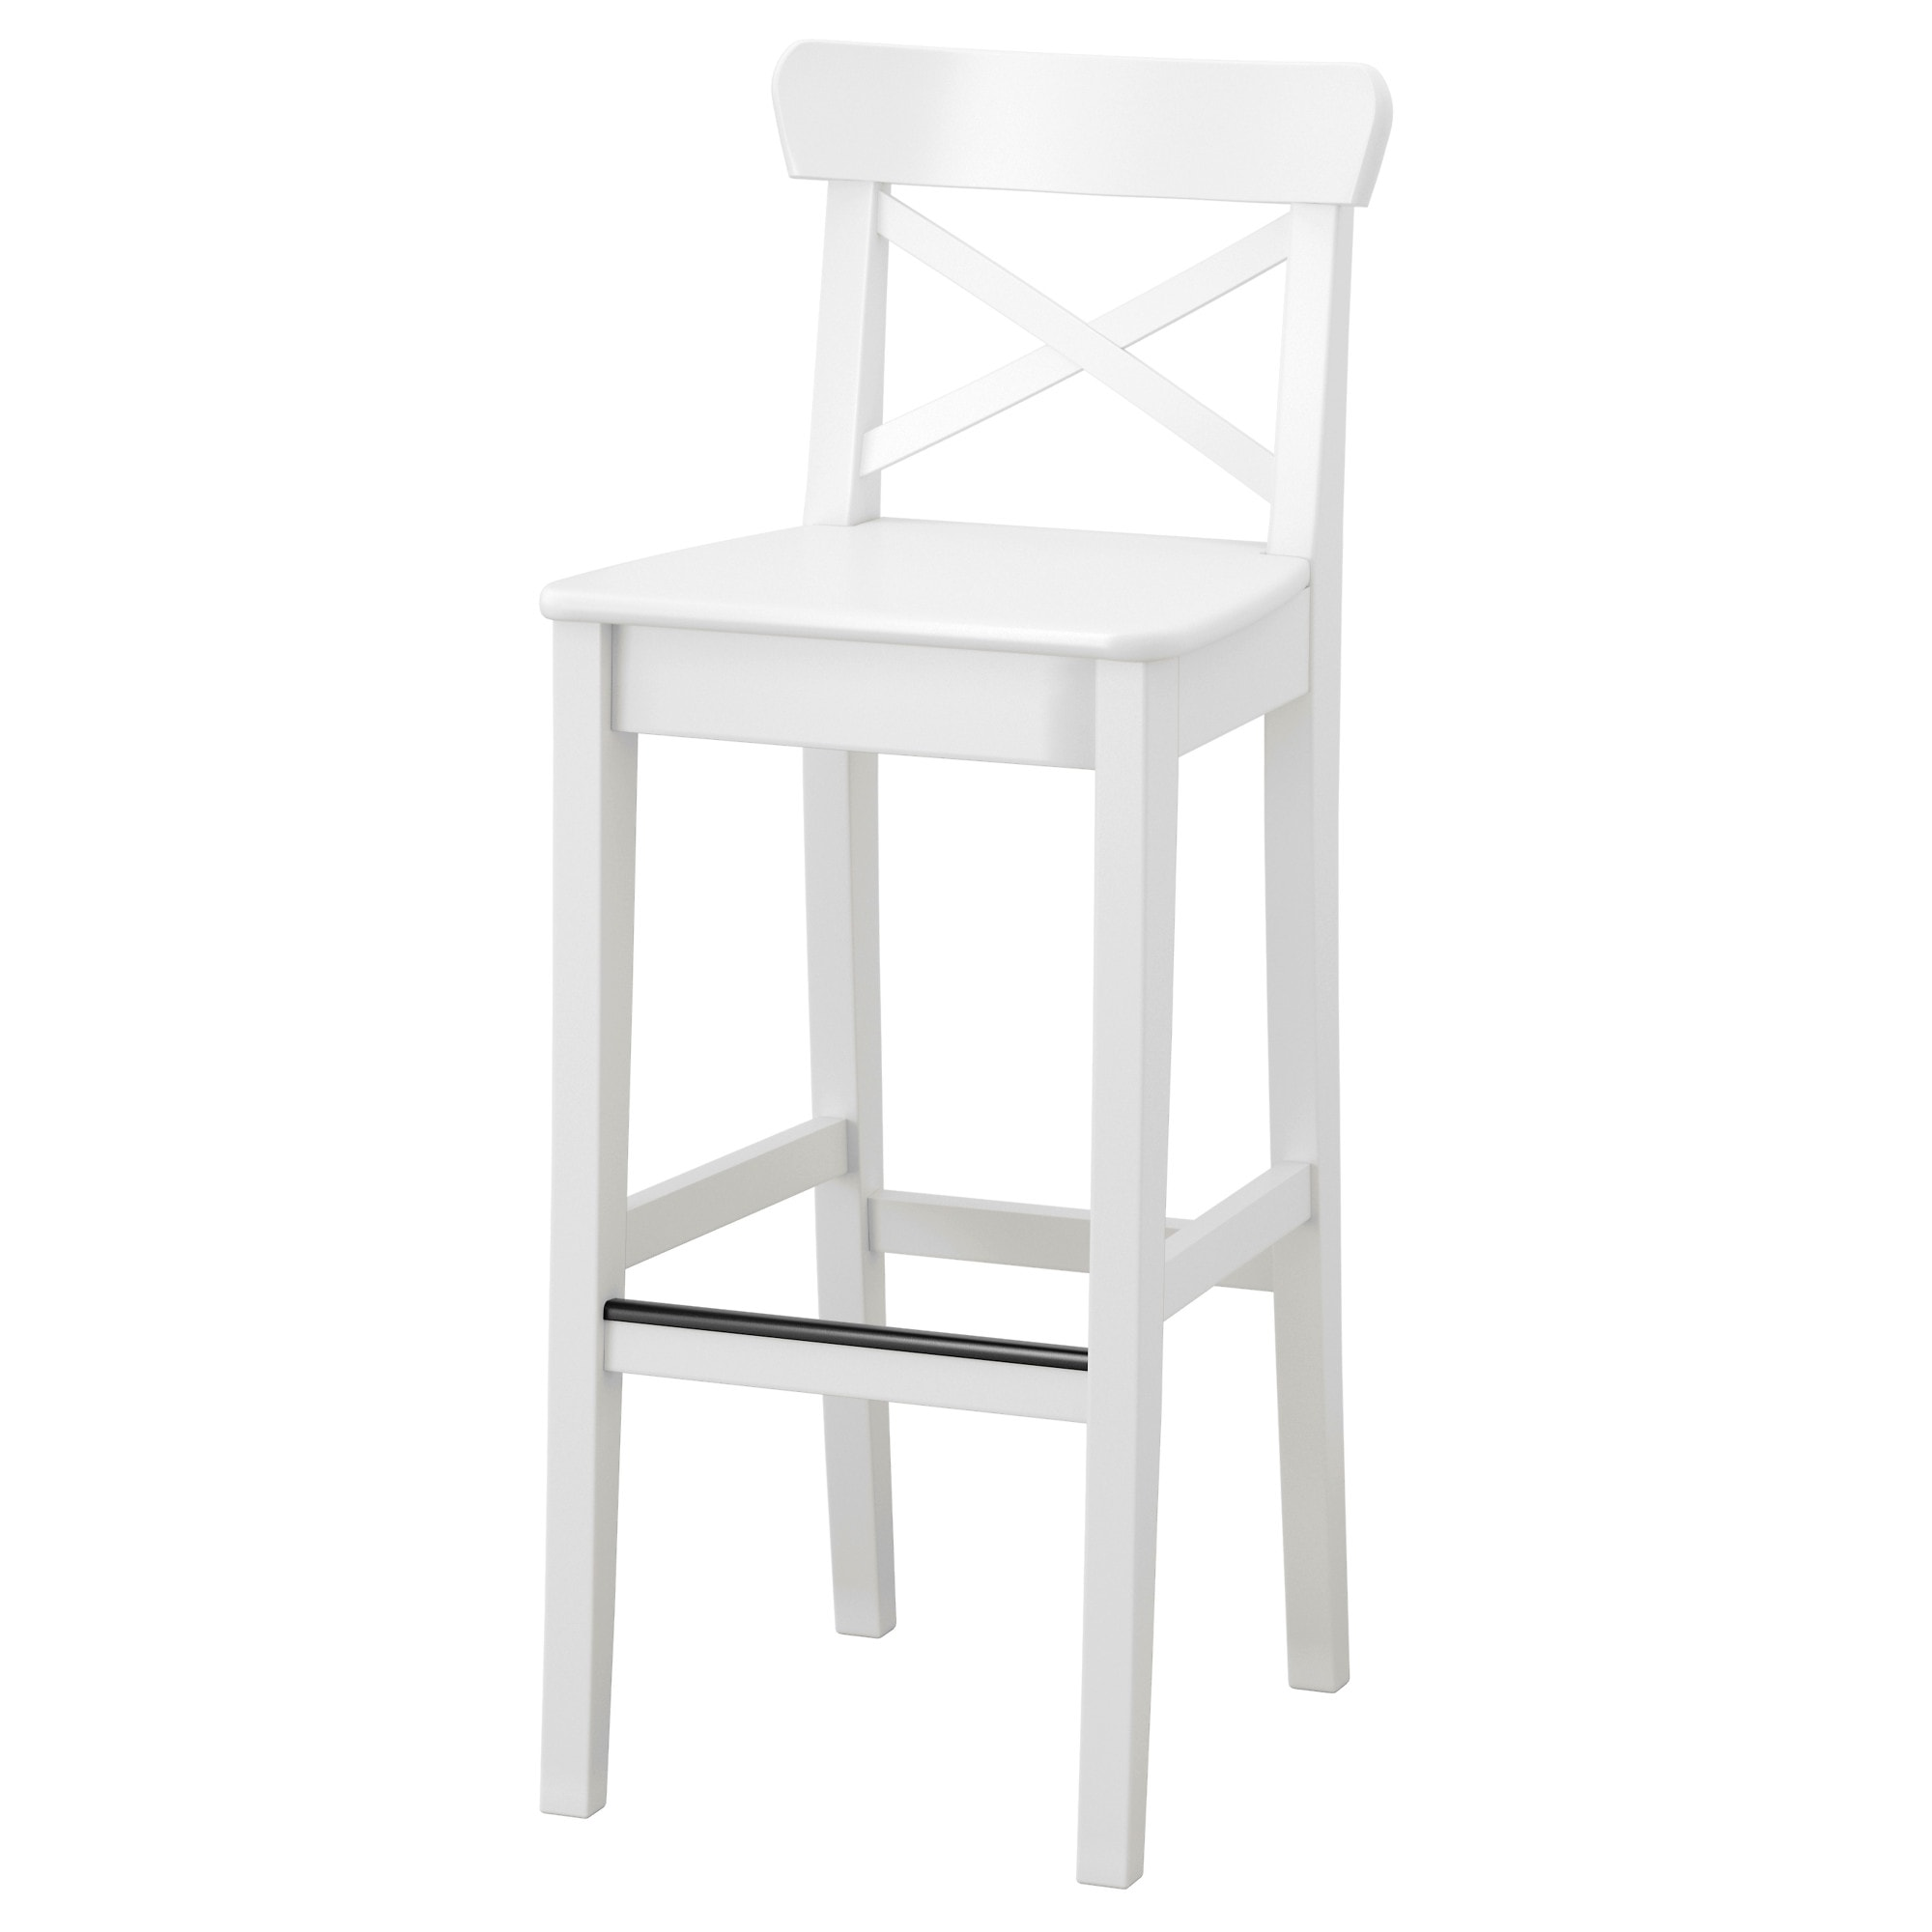 sc 1 st  Ikea : bar chair stool - islam-shia.org